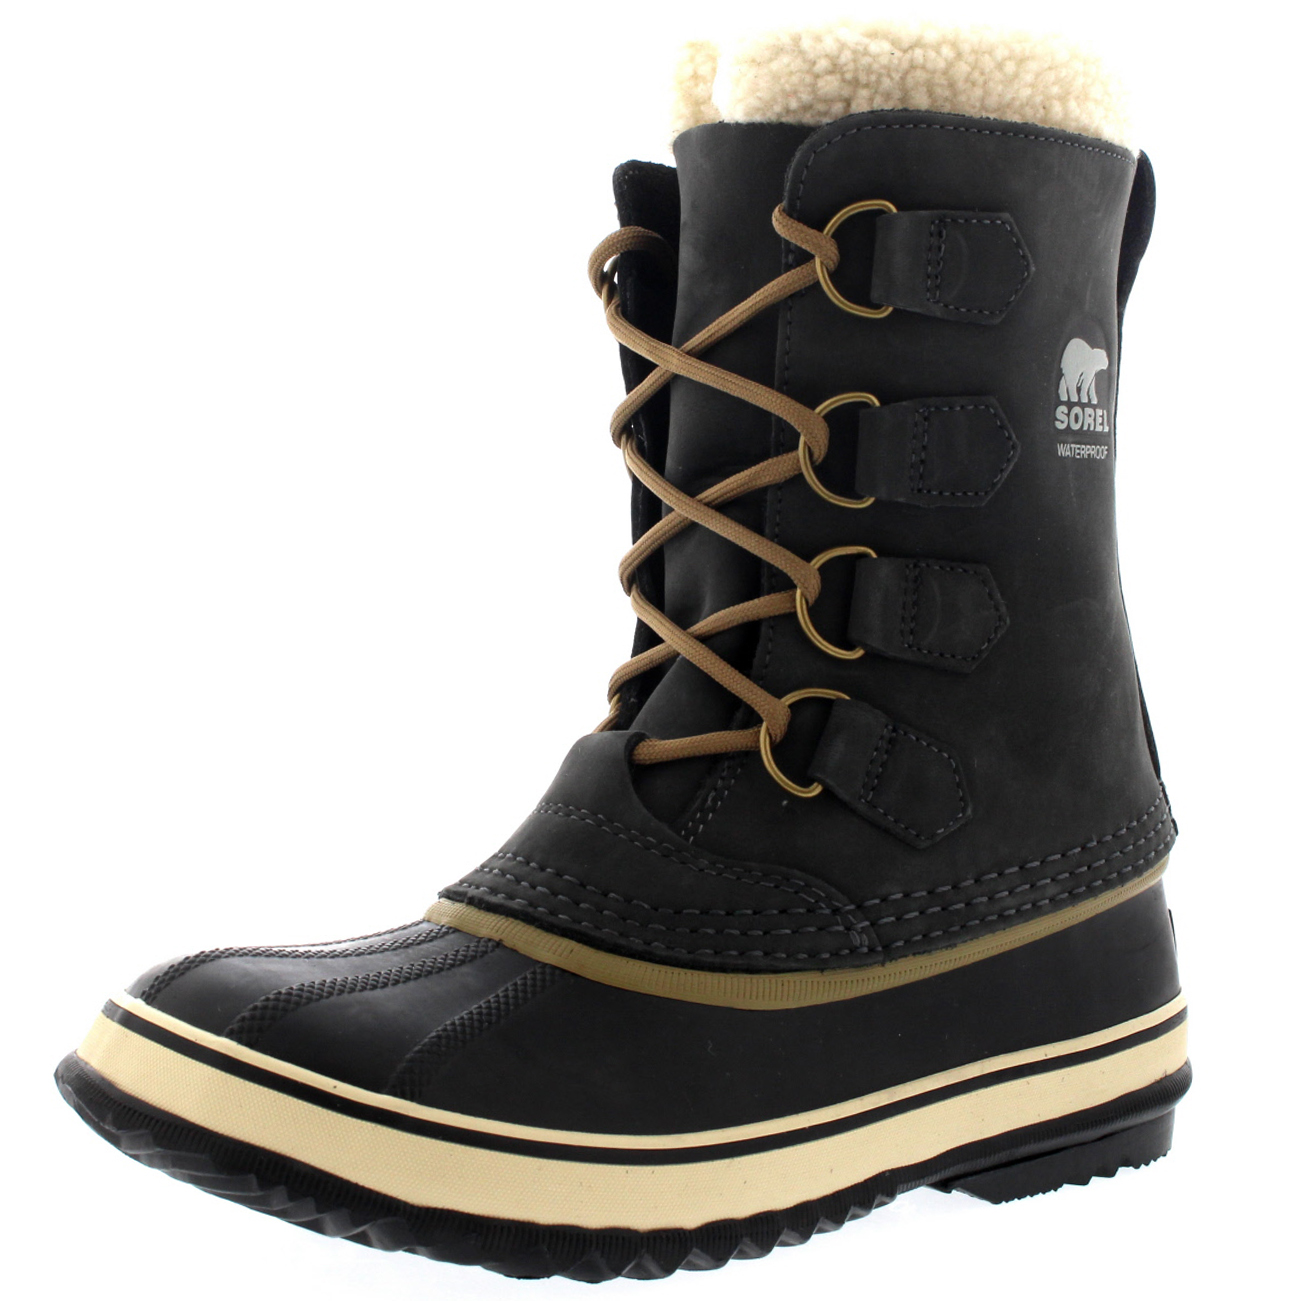 Unique Sorel Chipahko Felt Women39s Winter Boots UK 35 Major